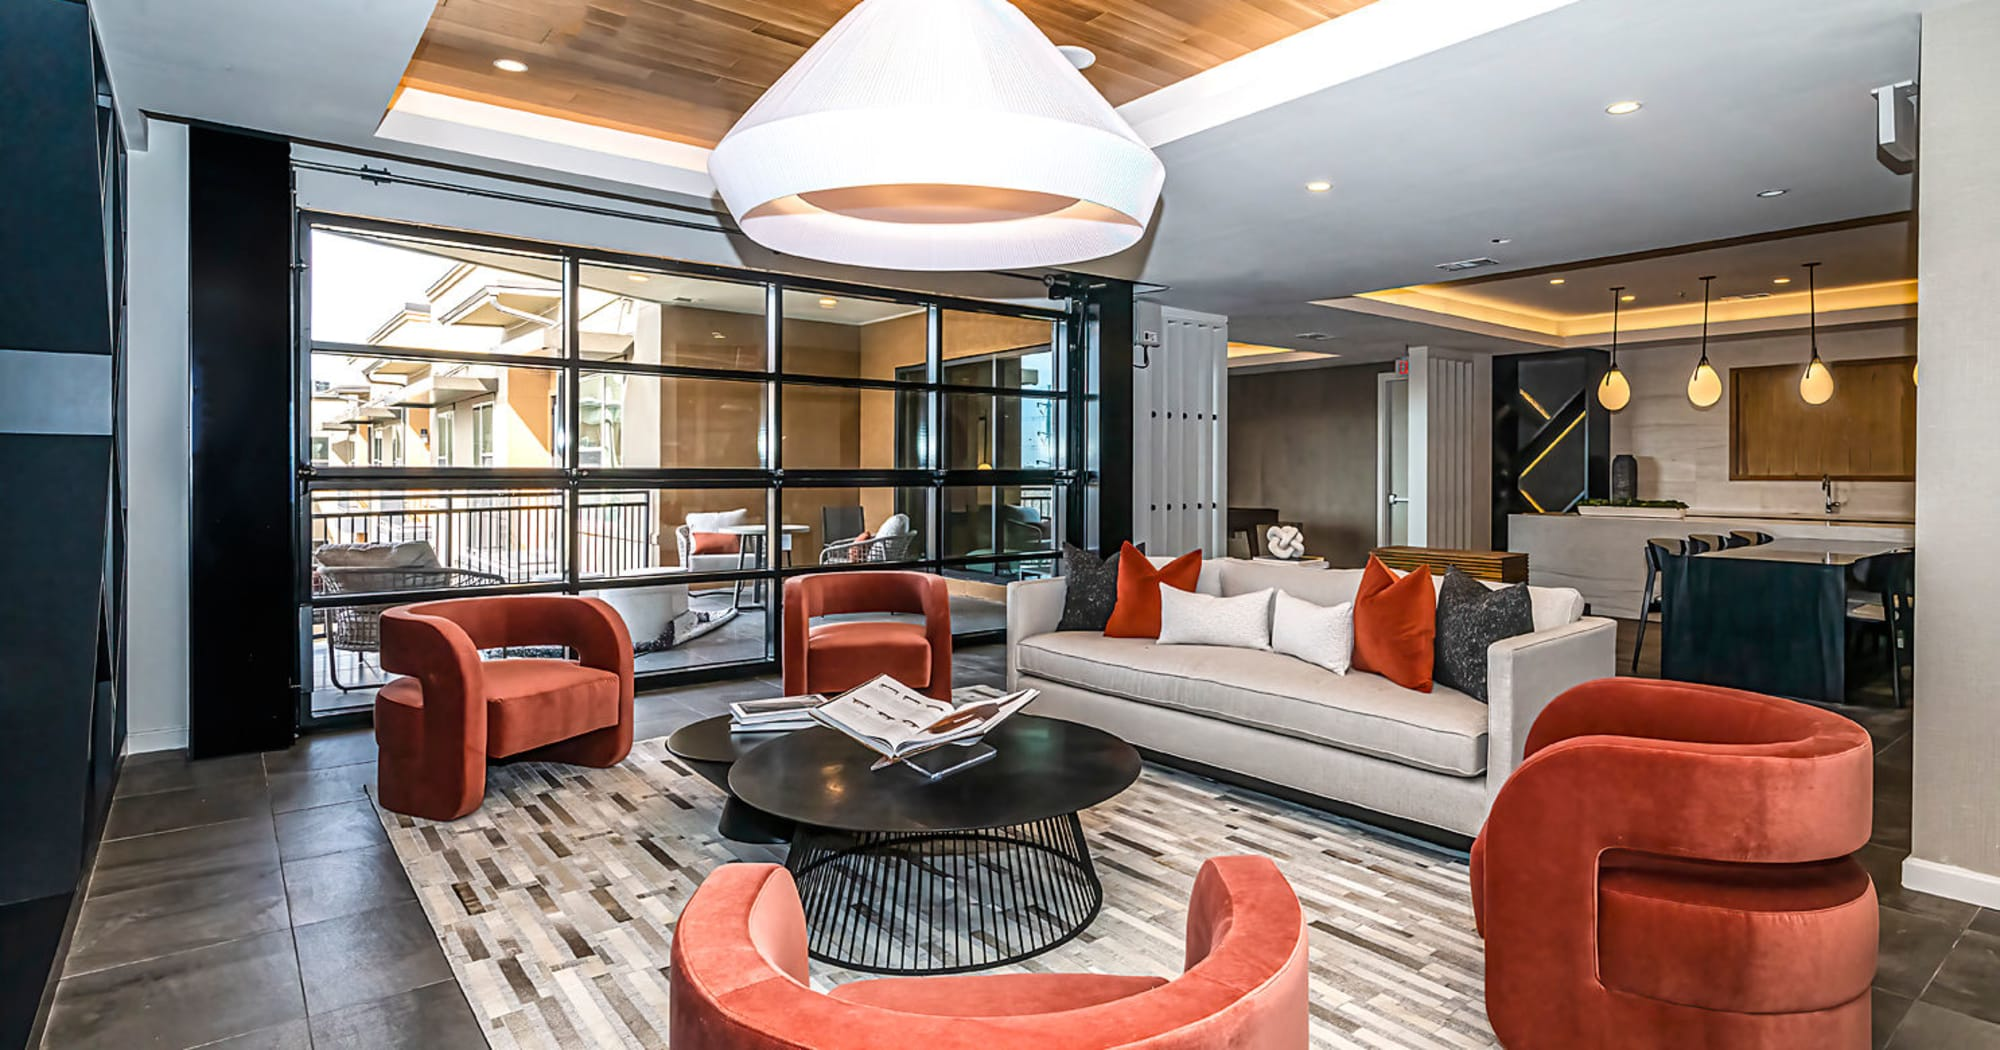 Apartments in Allen, Texas at Magnolia on the Green